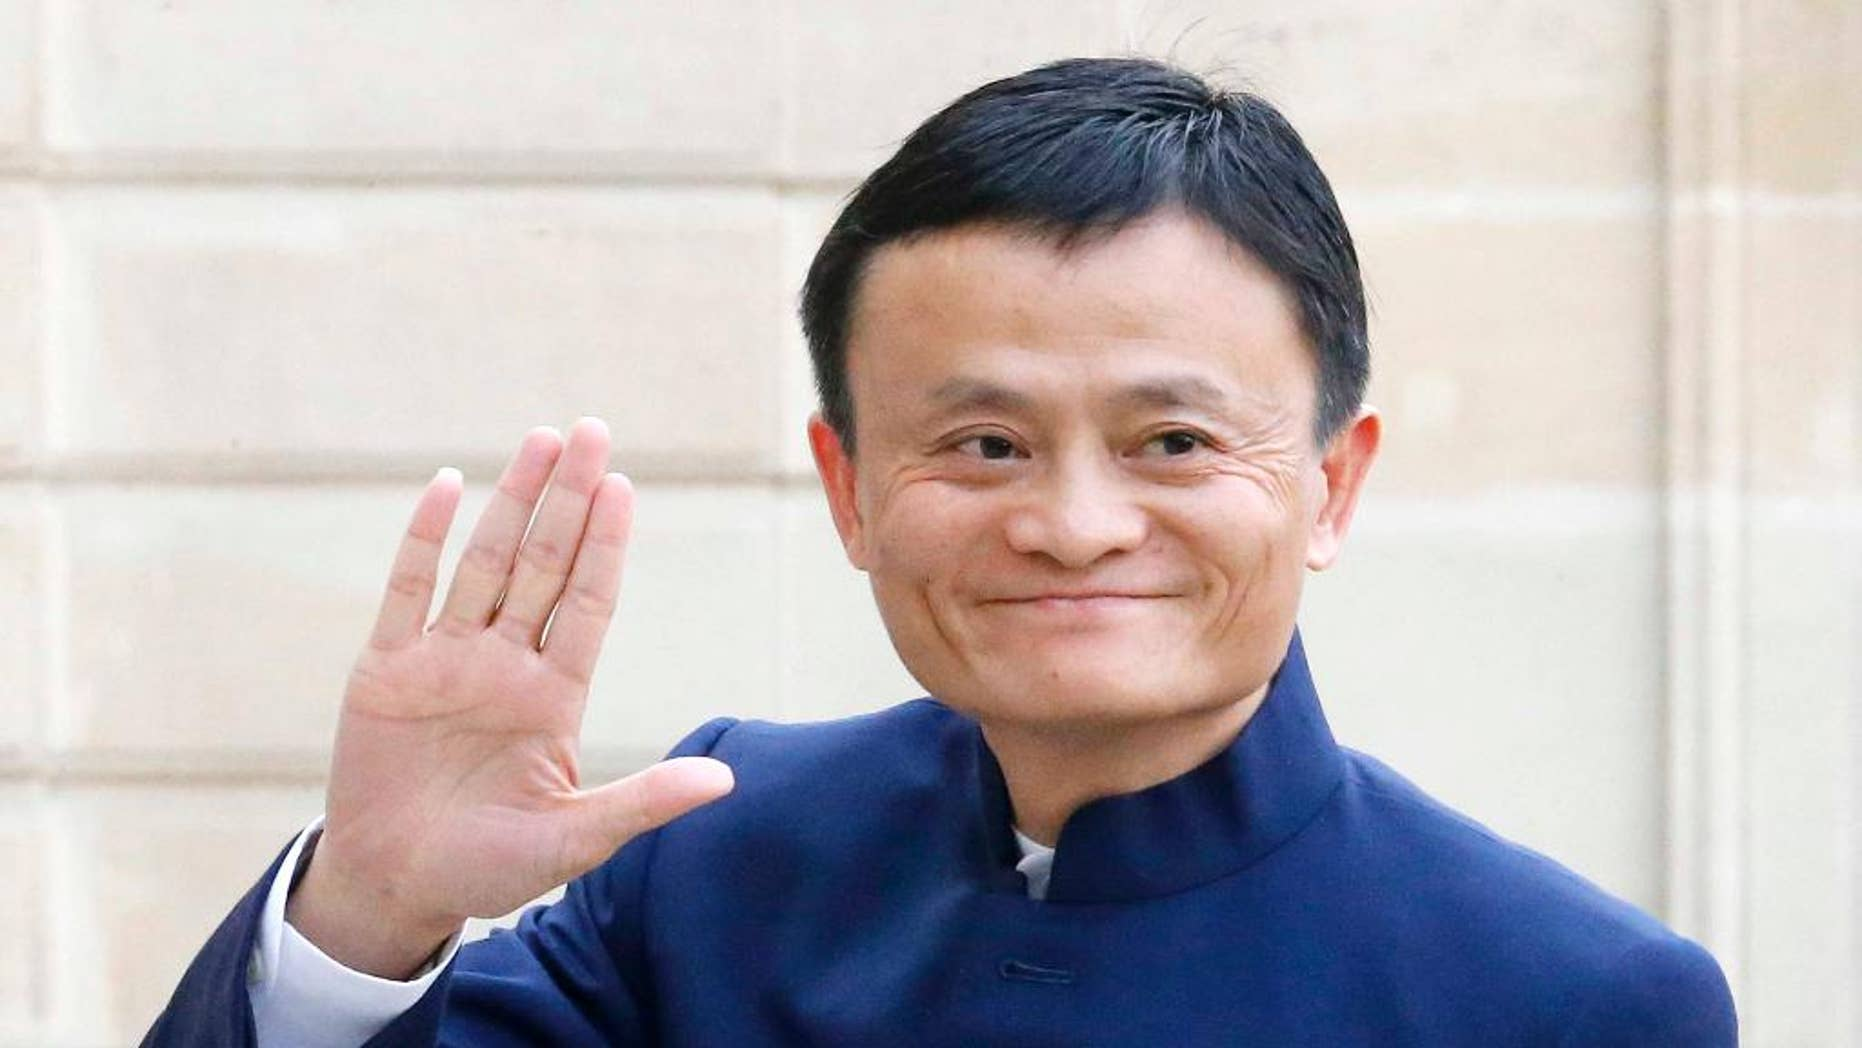 FILE - In this March 18, 2015 file photo, Jack Ma, founder and CEO of the Alibaba Group, arrives at the Elysee Palace, in Paris. Alibaba reports quarterly financial results on Thursday, May 7, 2015. (AP Photo/Jacques Brinon, File)